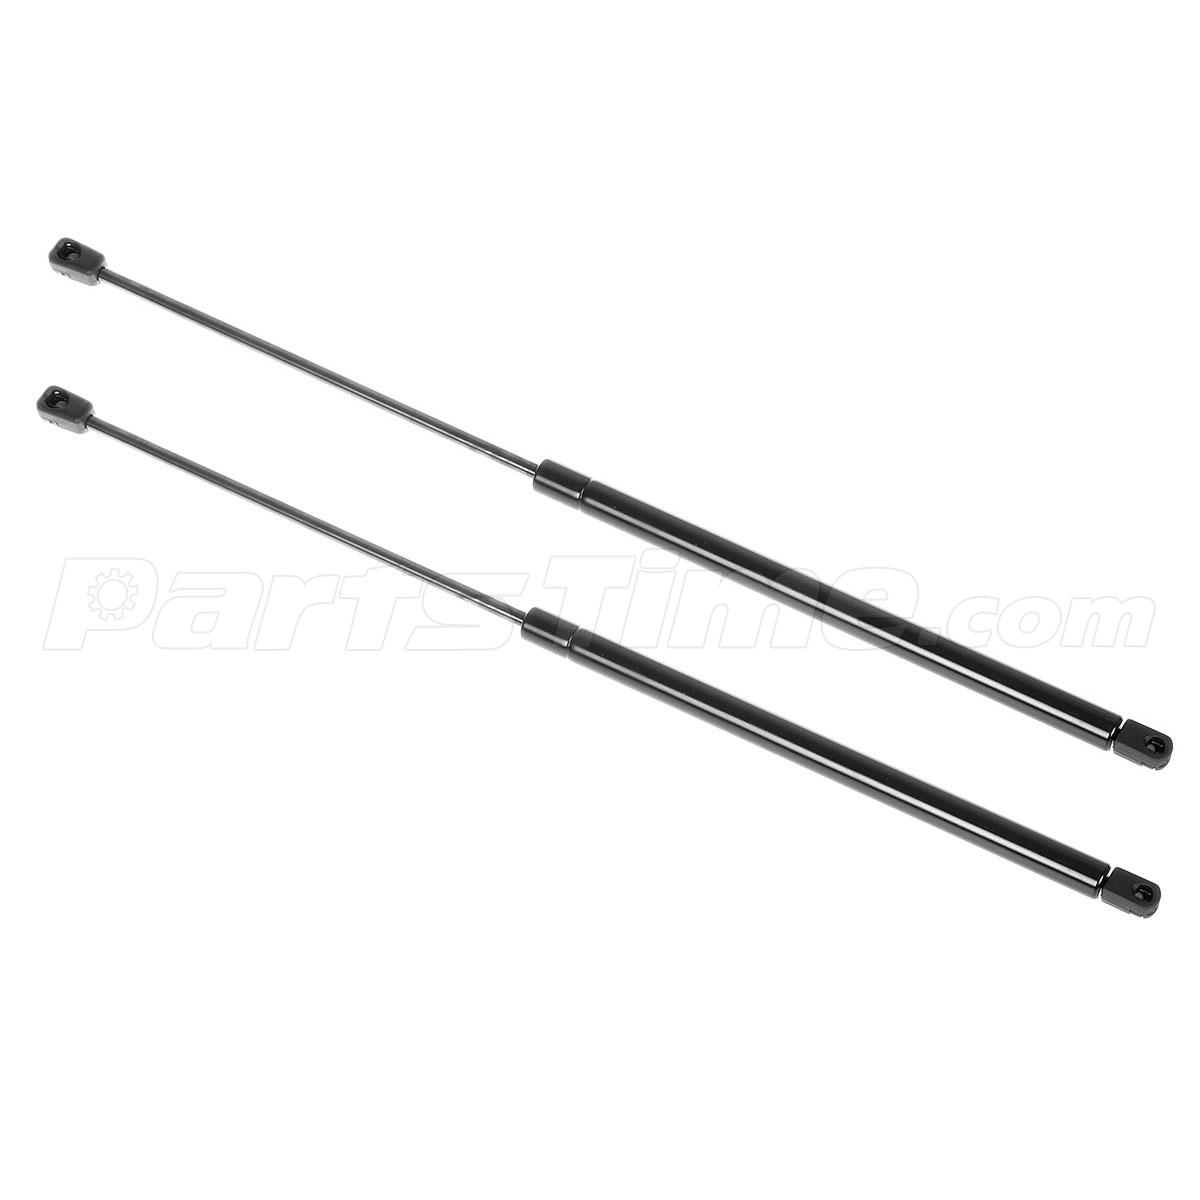 2 Front Hood Gas Charged Lift Support For Ford